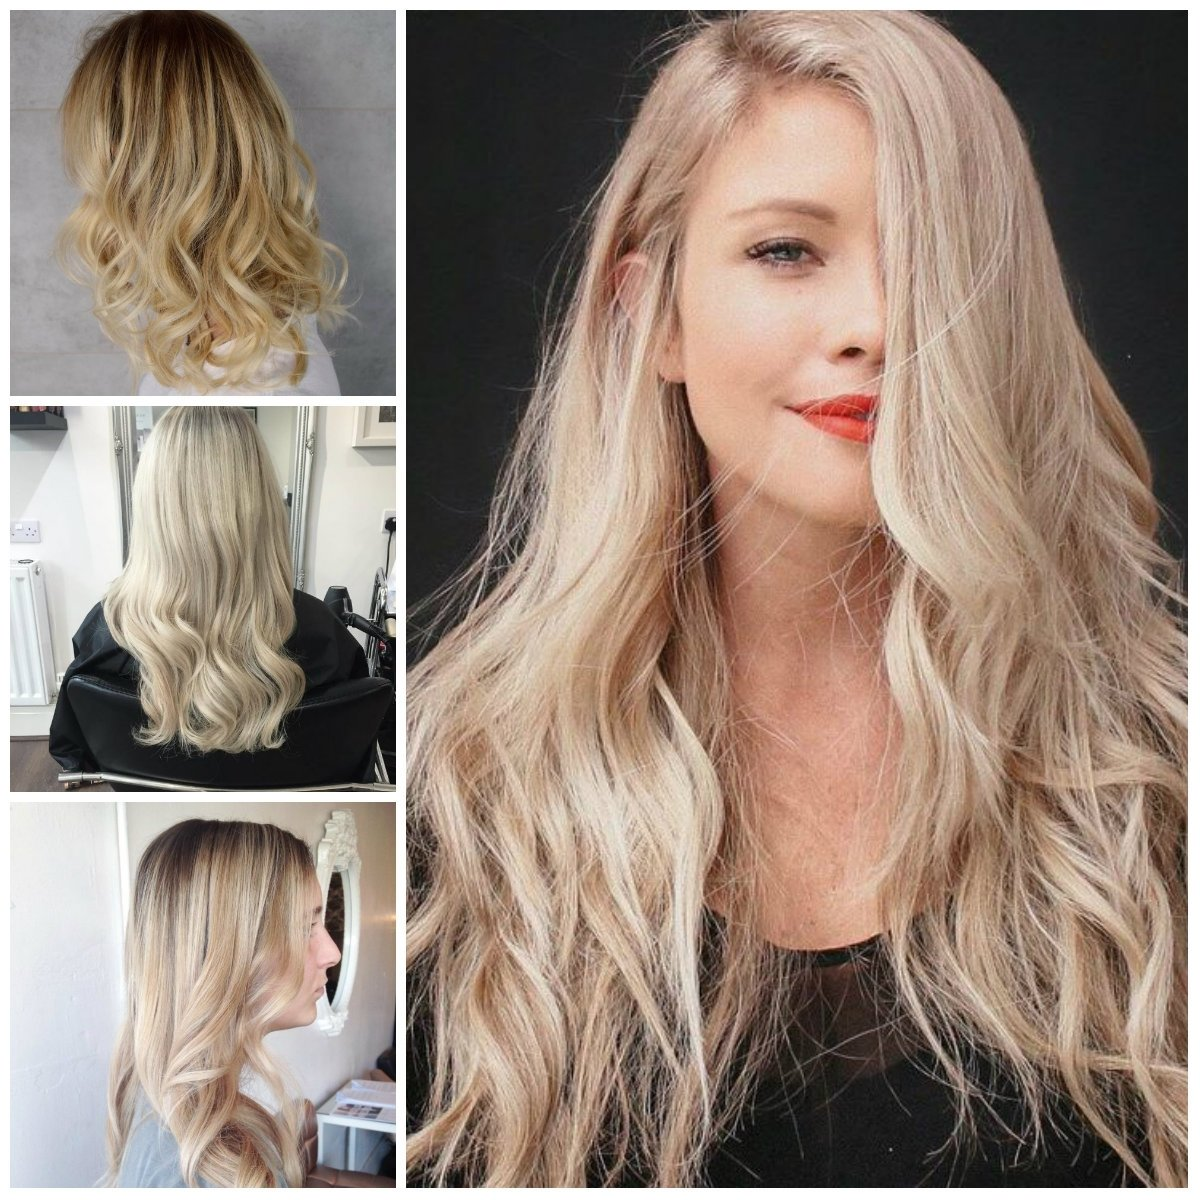 10 Attractive Brown & Blonde Hair Color Ideas light blonde hair color ideas for 2017 best hair color ideas 2 2021